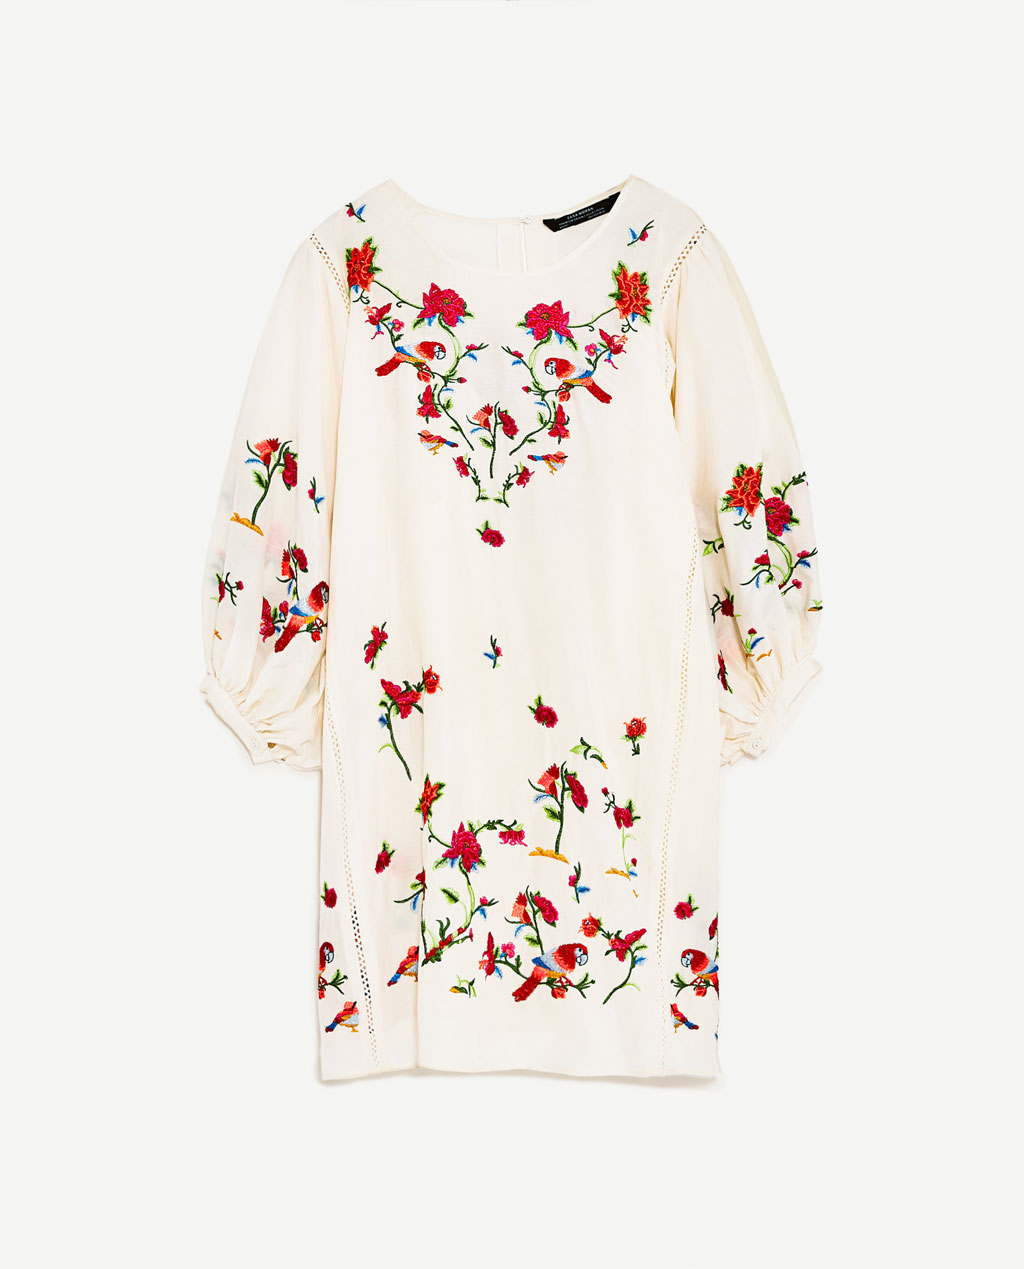 zara-59-99-embroidered-dress